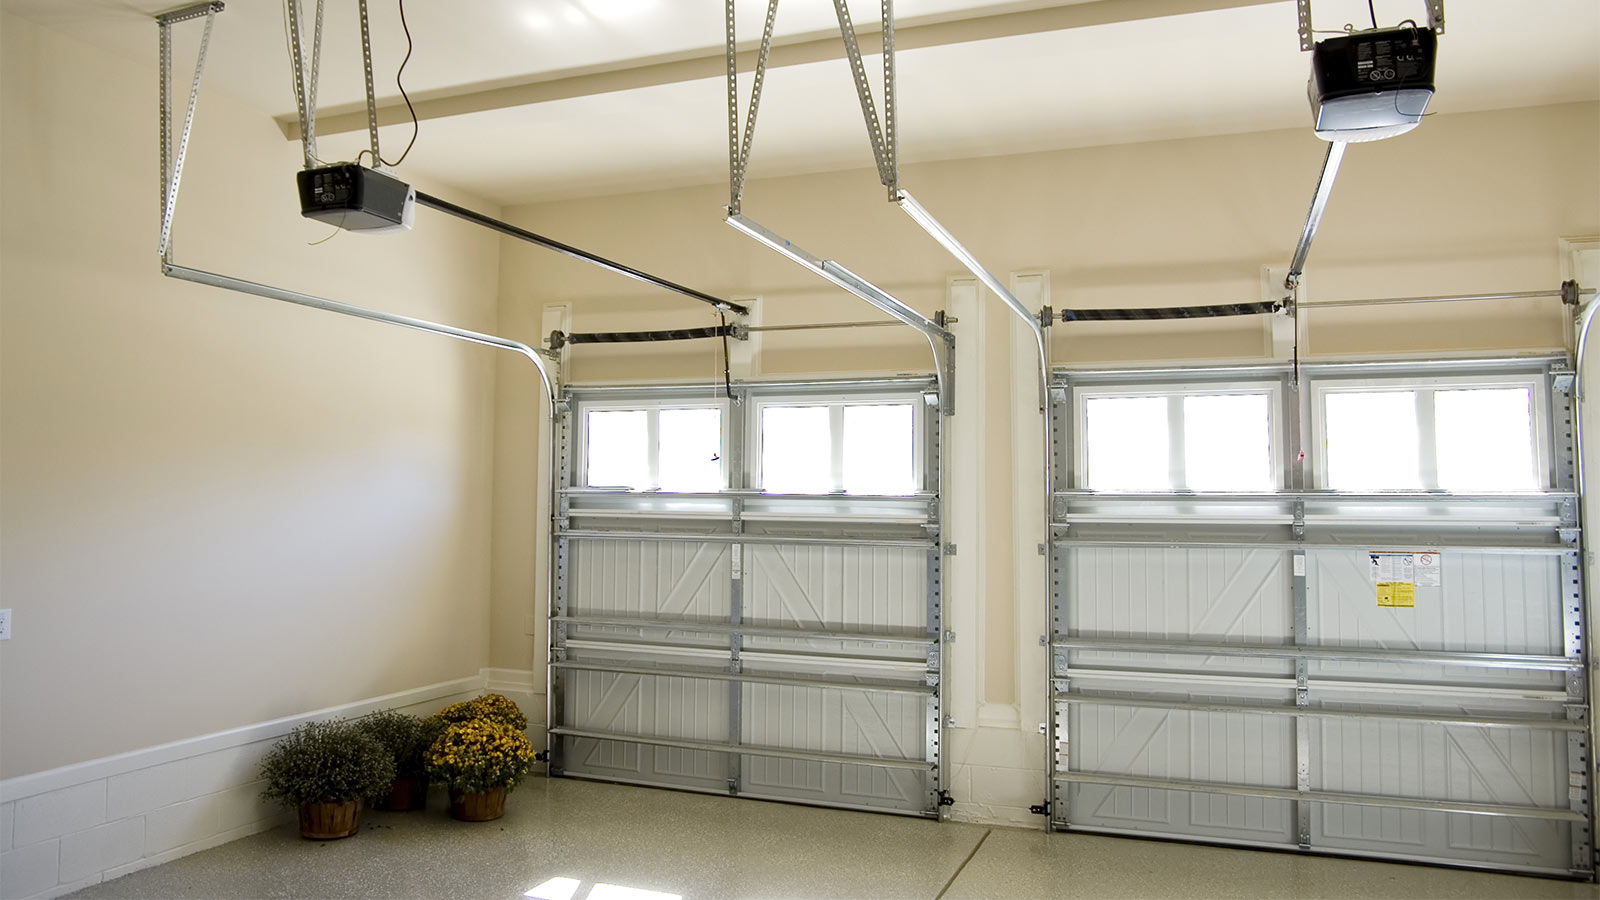 Sectional Garage Doors from Up and Over Doors Harlow suppliers.